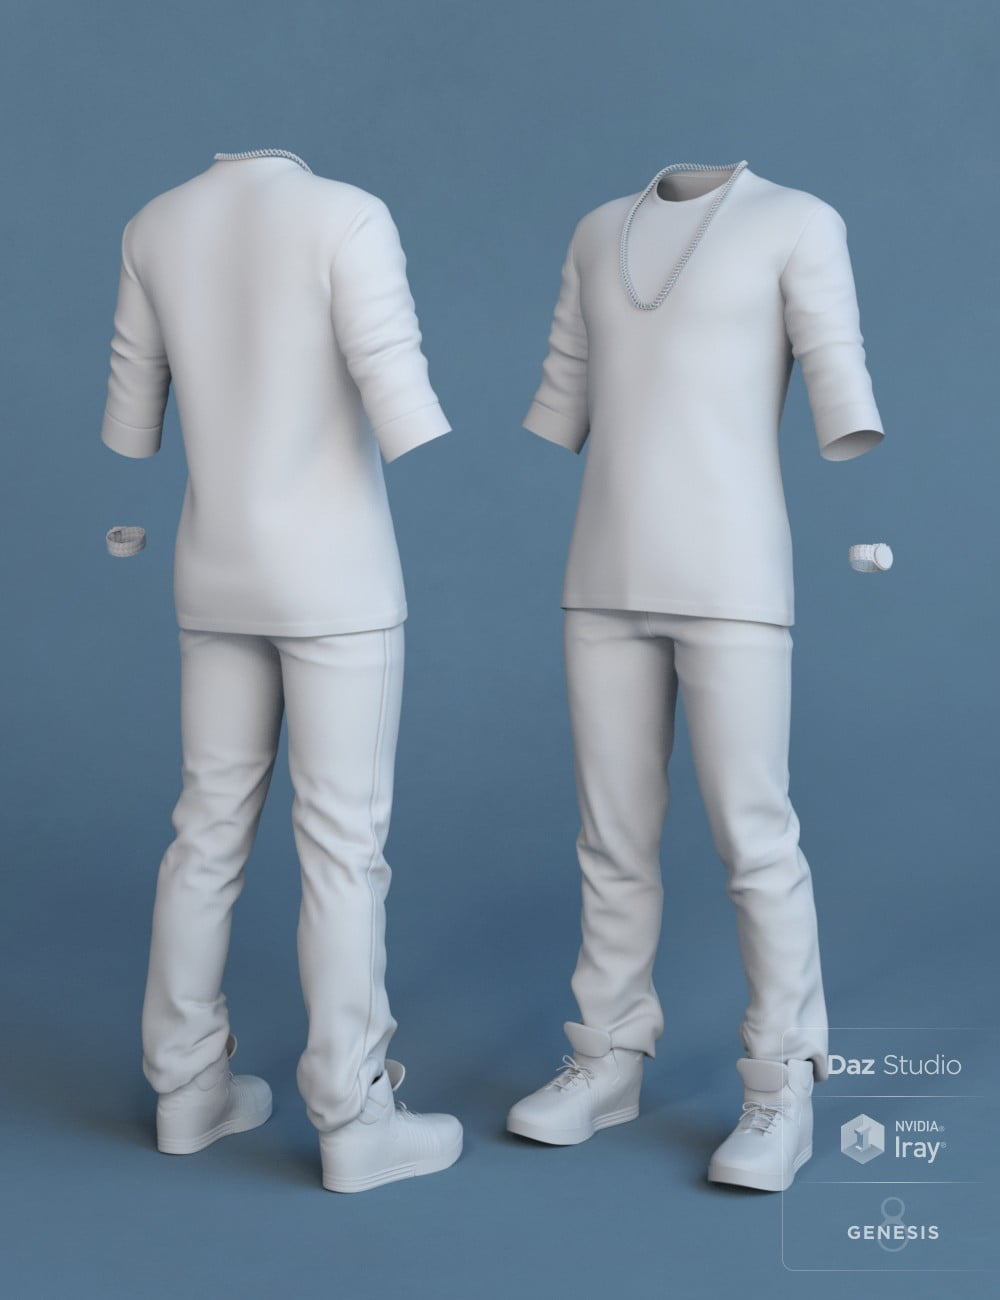 Street Style Outfit for Genesis 8 Male(s)